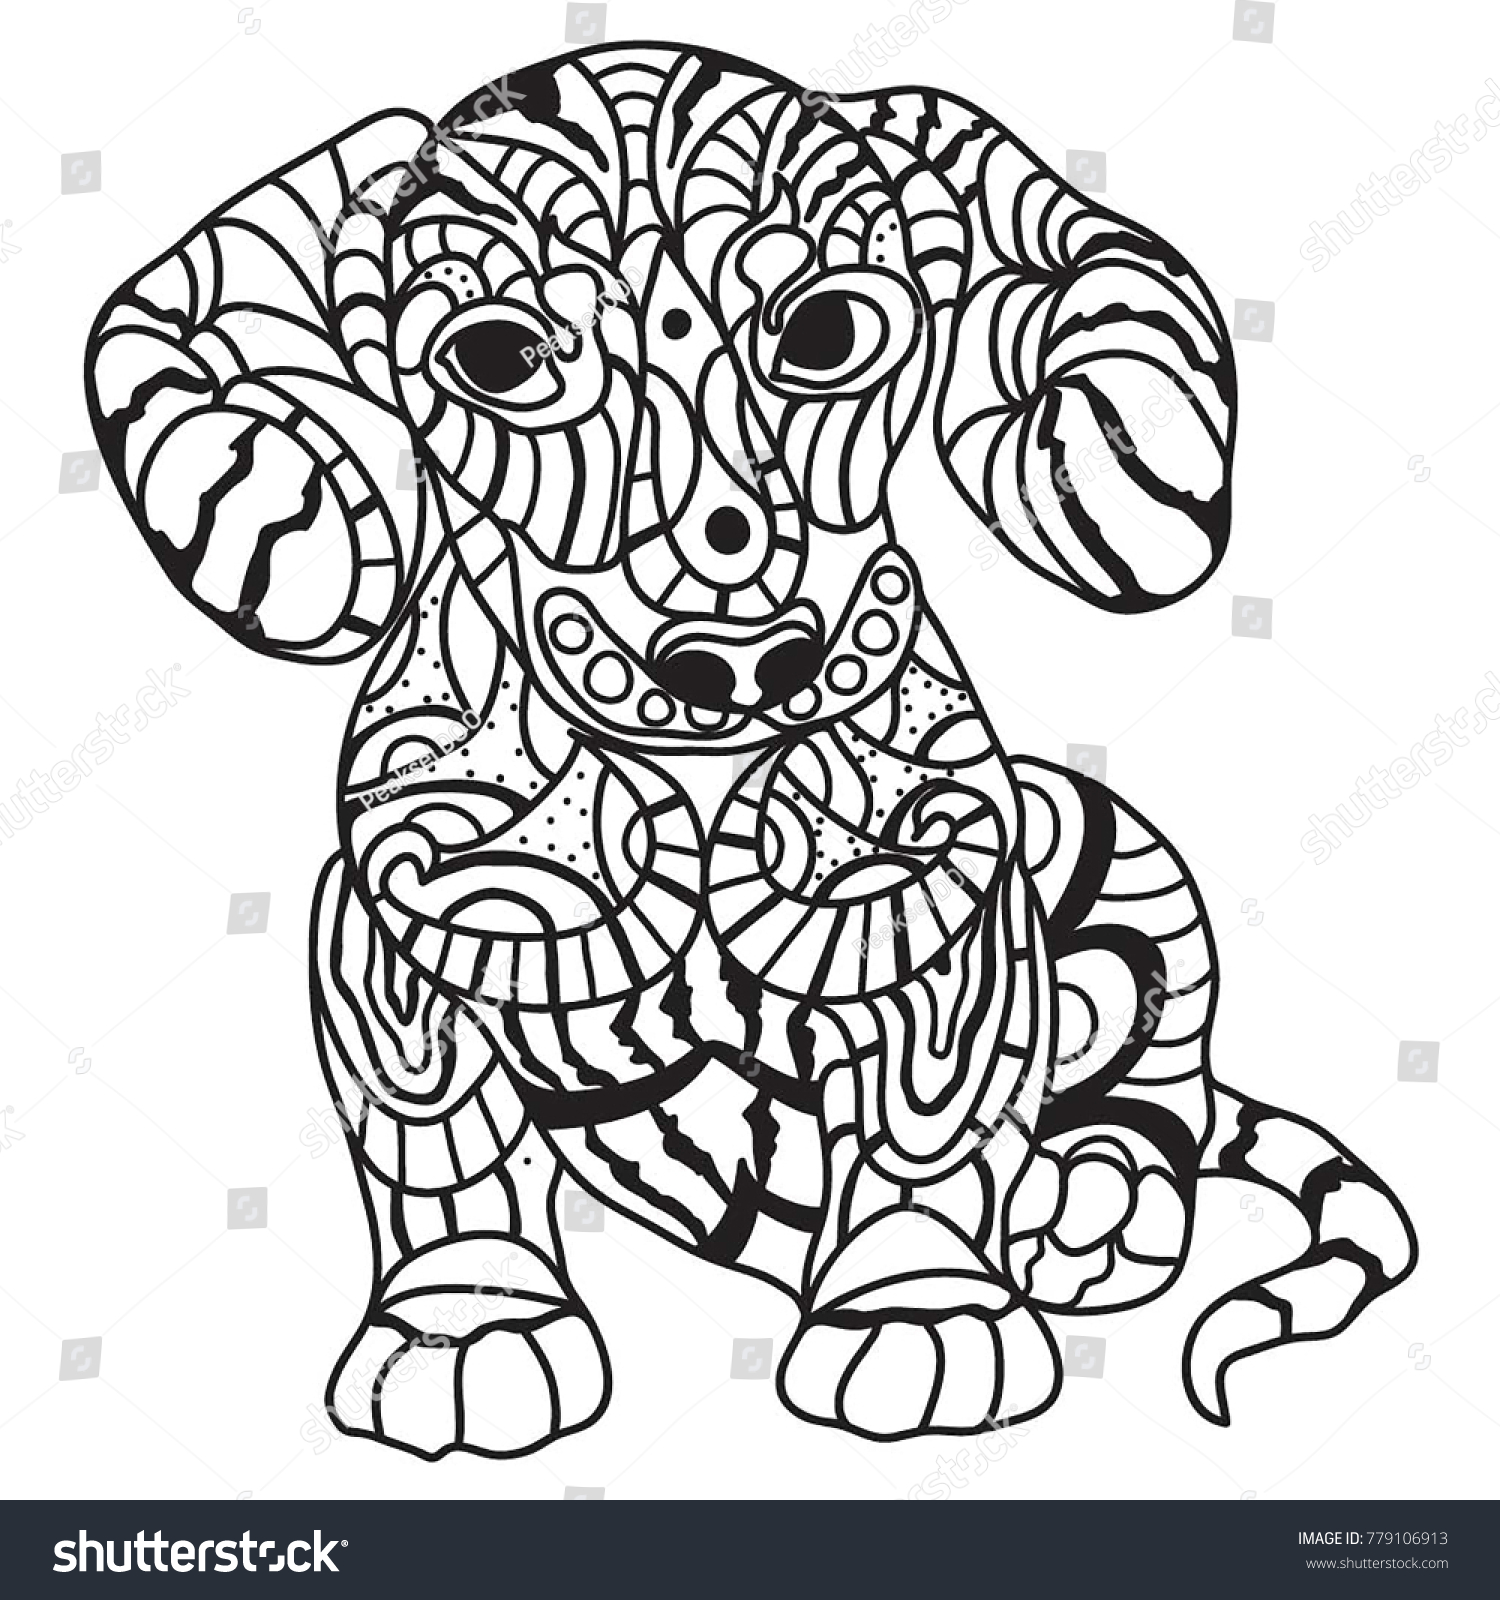 Puppy Dog With Big Ears Coloring Page